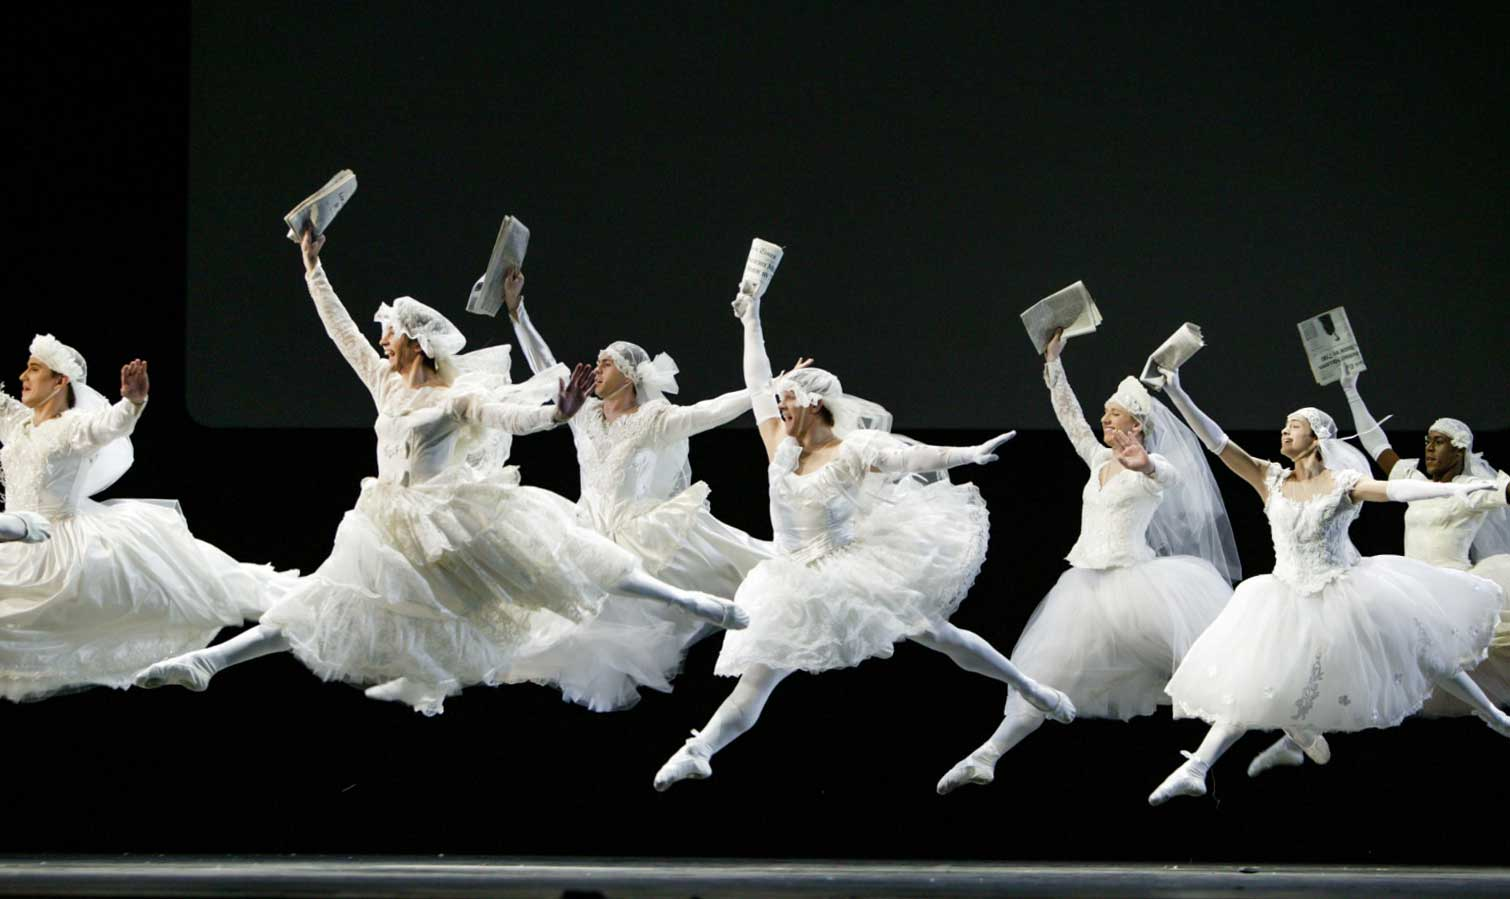 A group of brides all in white (some men dressed as women) leap at the news, held in their upstage hand.